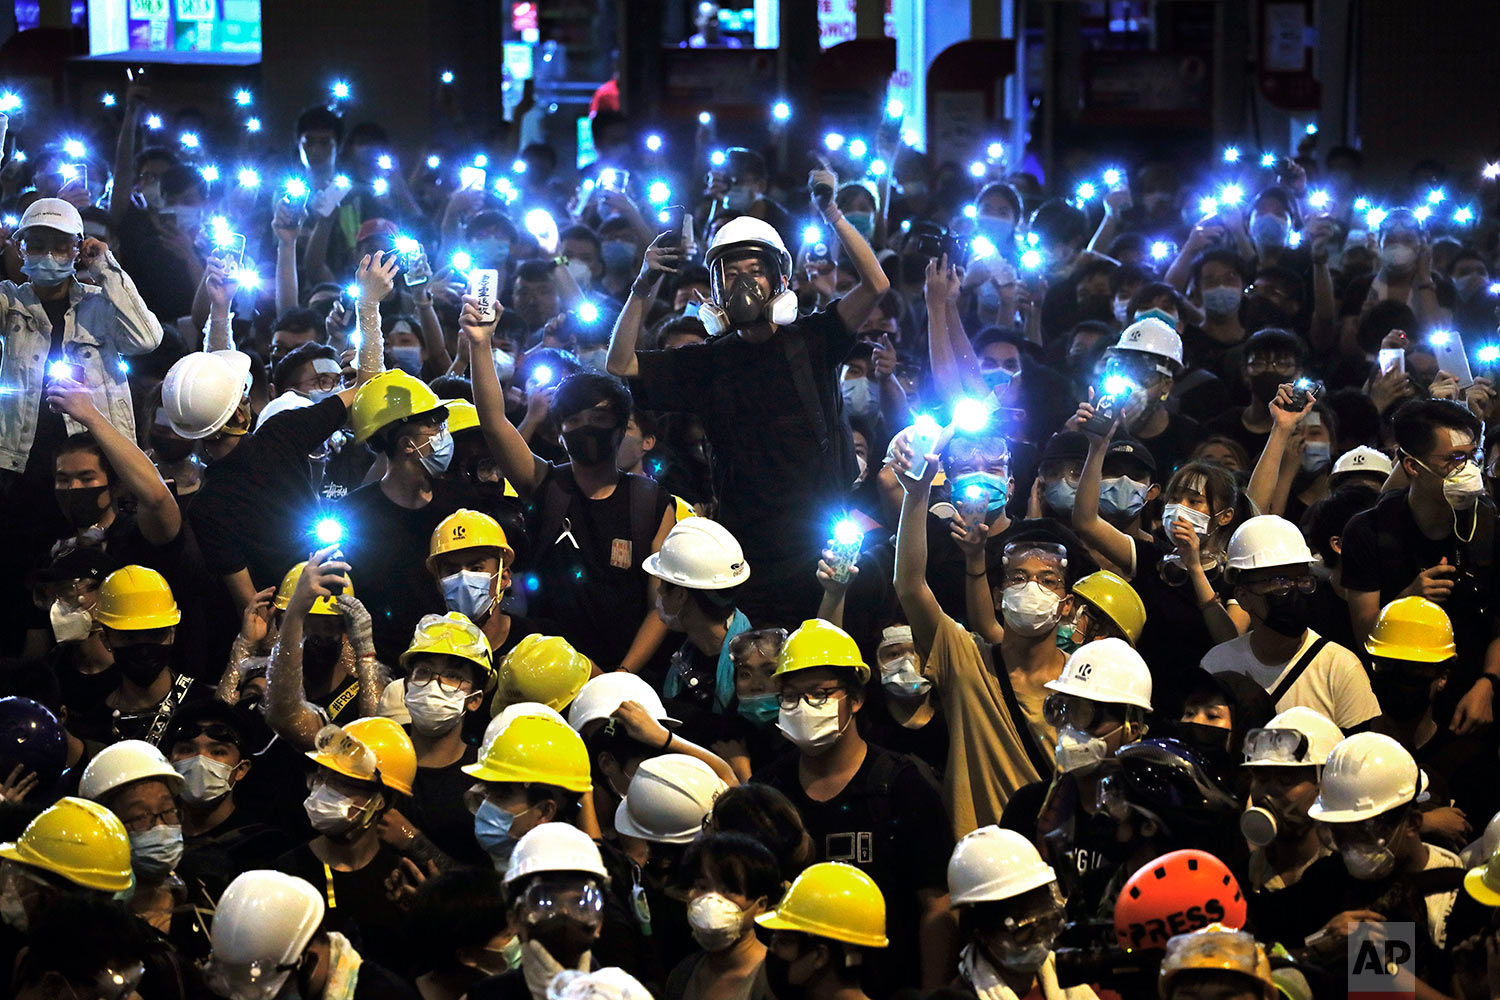 Protesters wearing yellow hardhats hold up mobile phone lights in front of police headquarters in Hong Kong, June 21, 2019. (AP Photo/Vincent Yu)